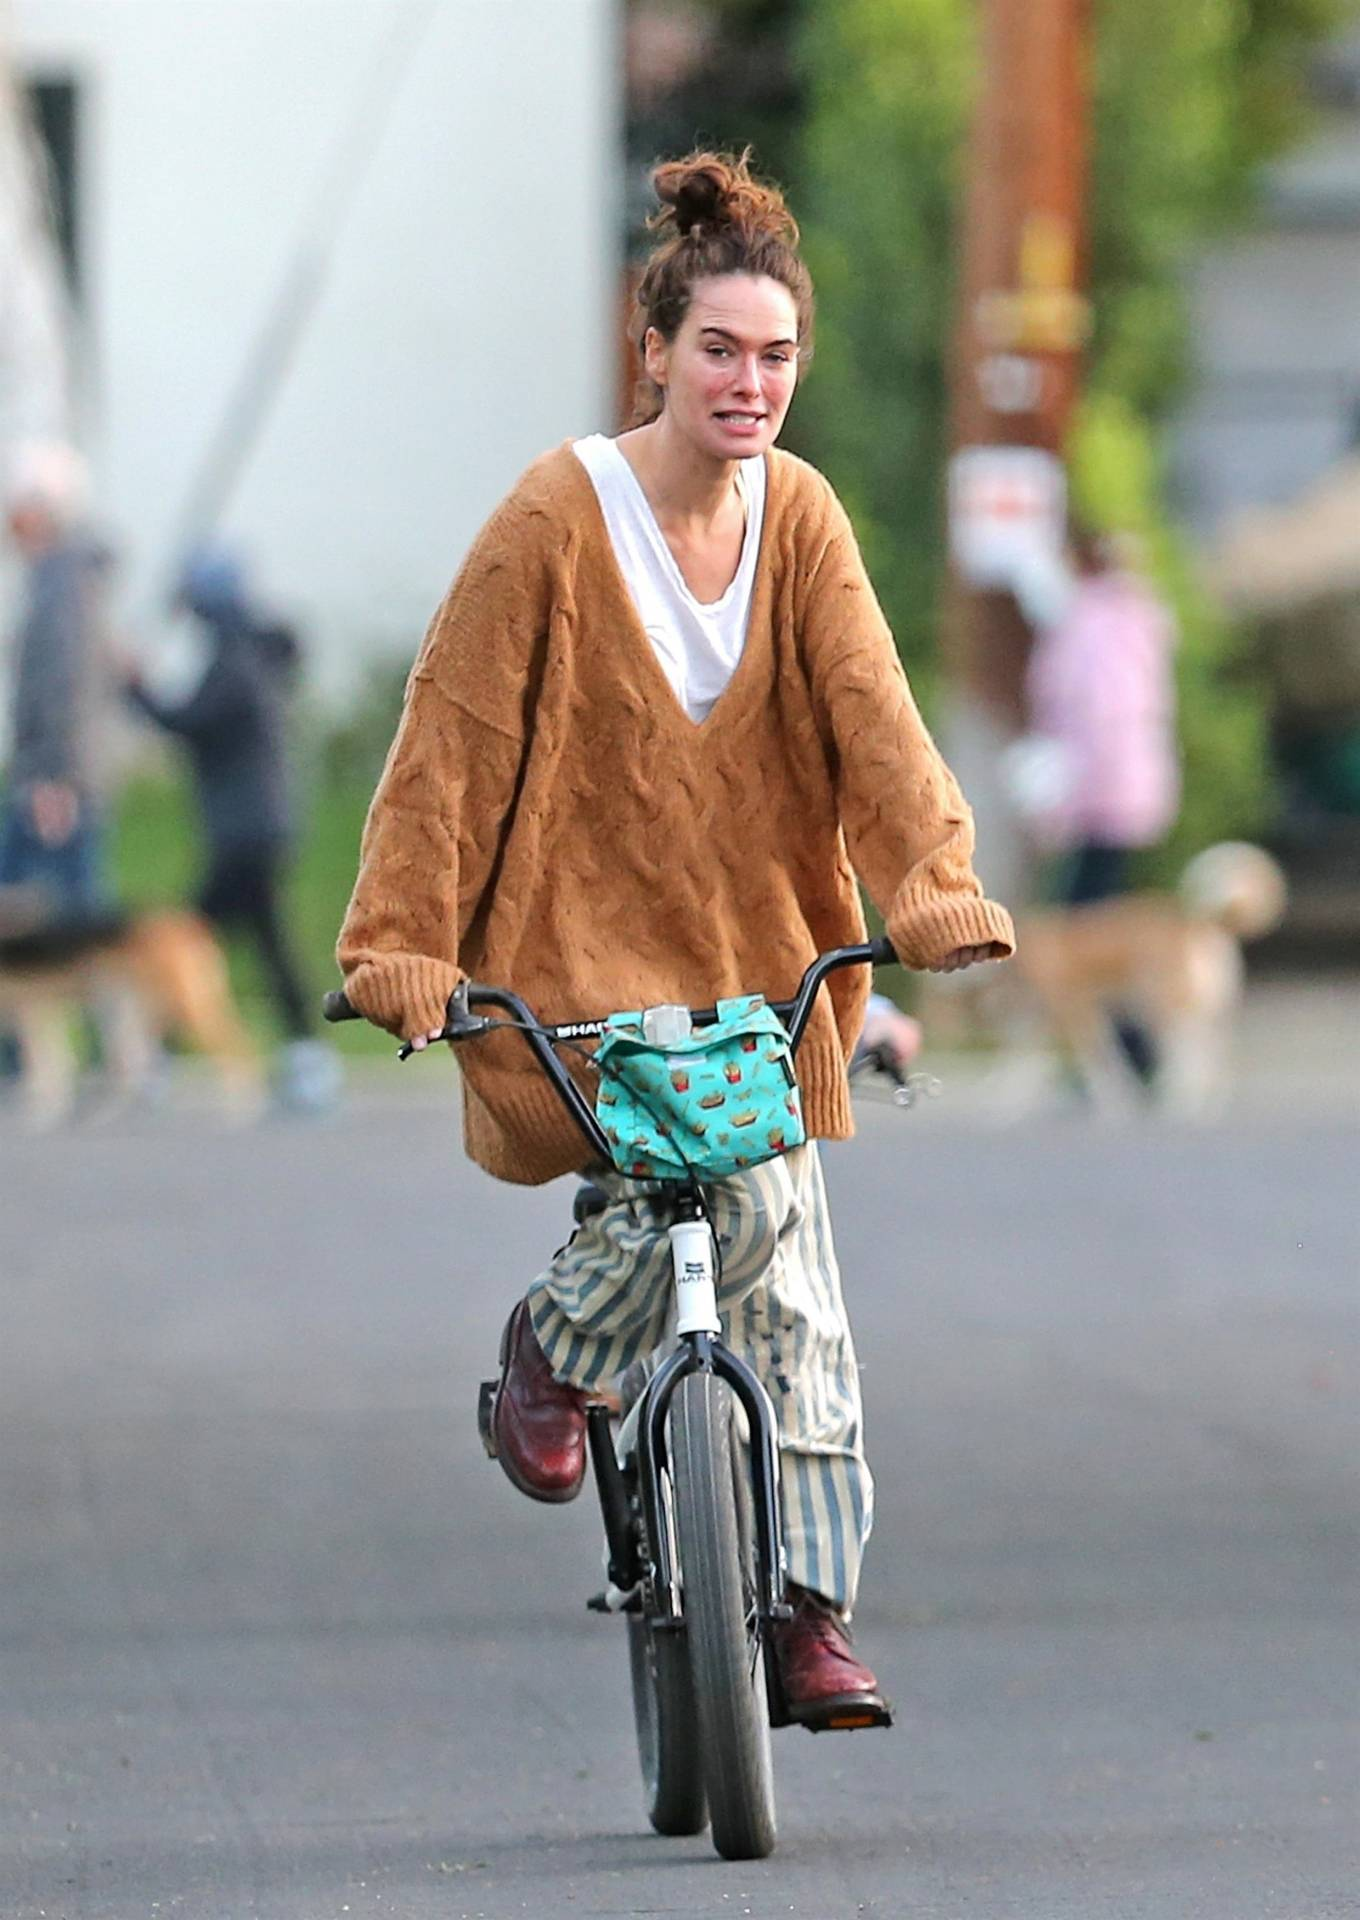 Lena Headey 2020 : Lena Headey – Riding a bicycle in Los Angeles-07